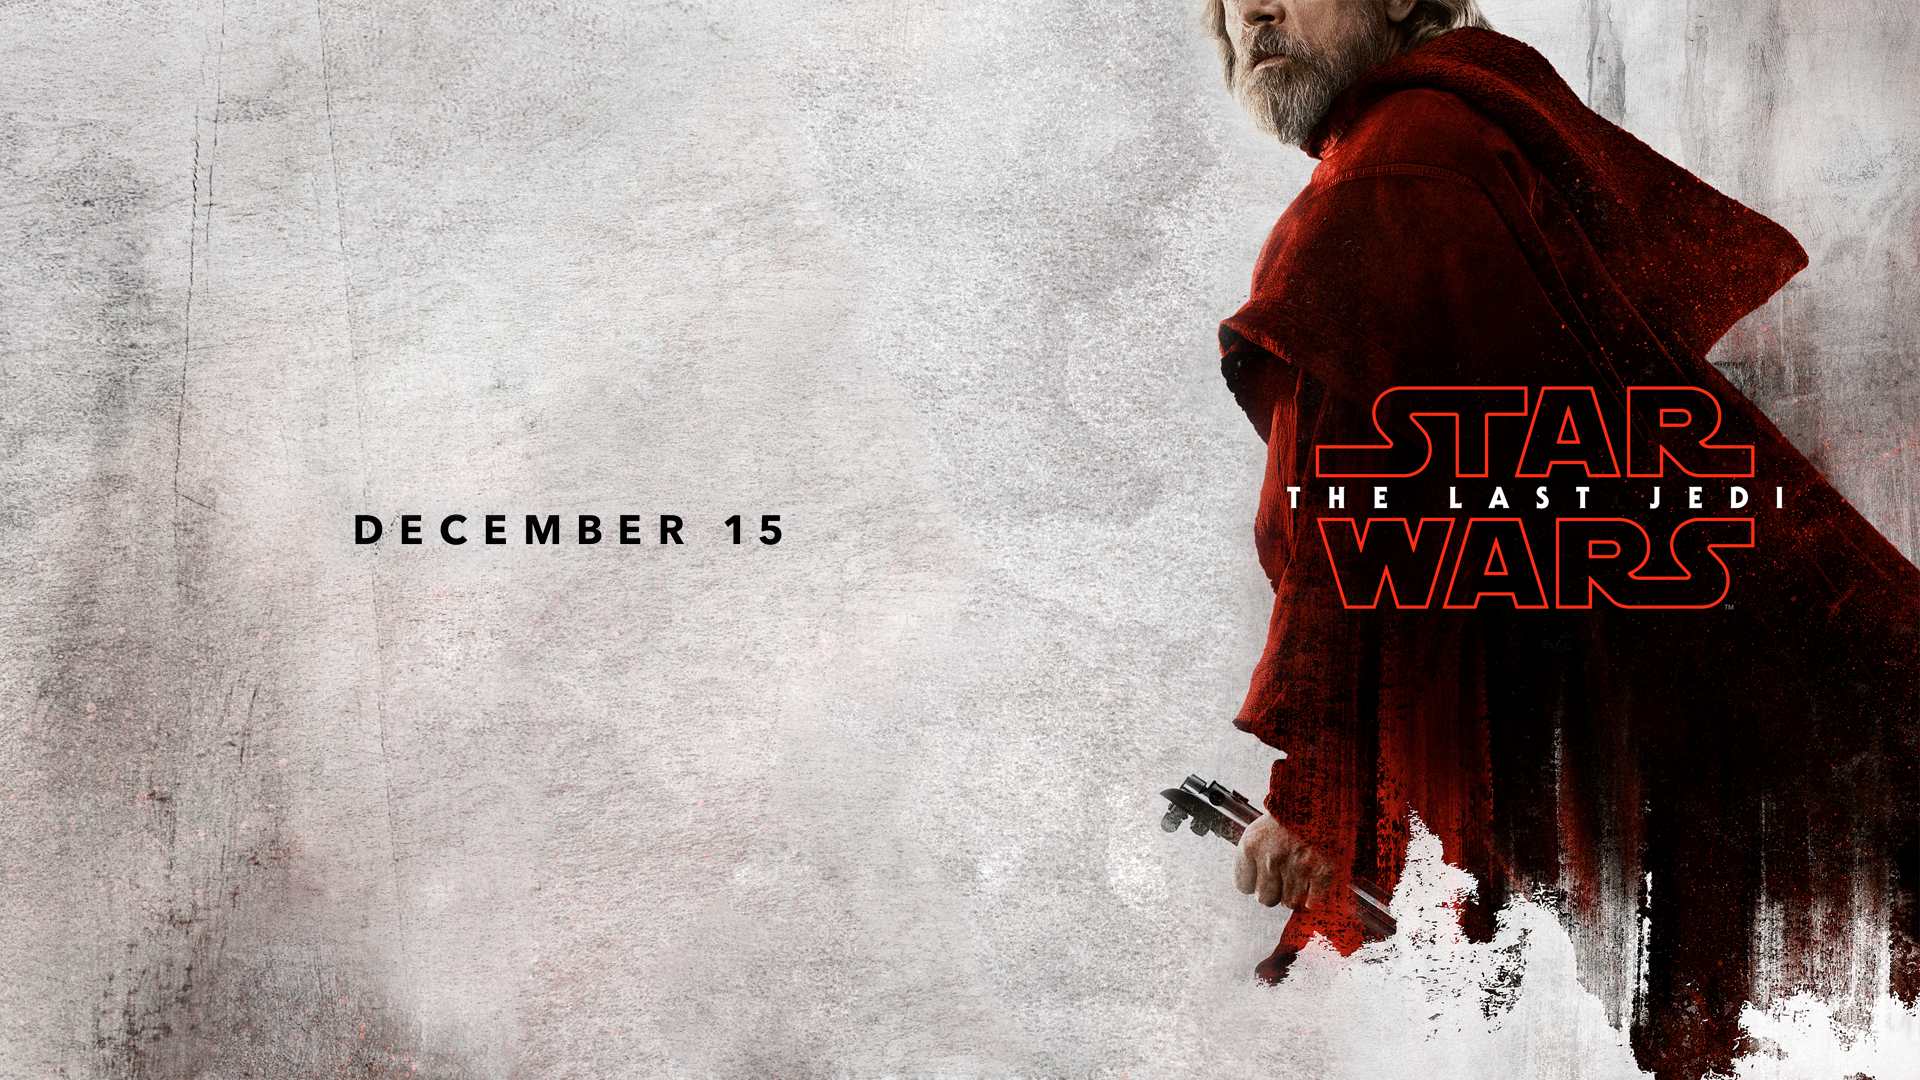 The Last Jedi Luke Skywalker Wallpaper By Spirit Of Adventure